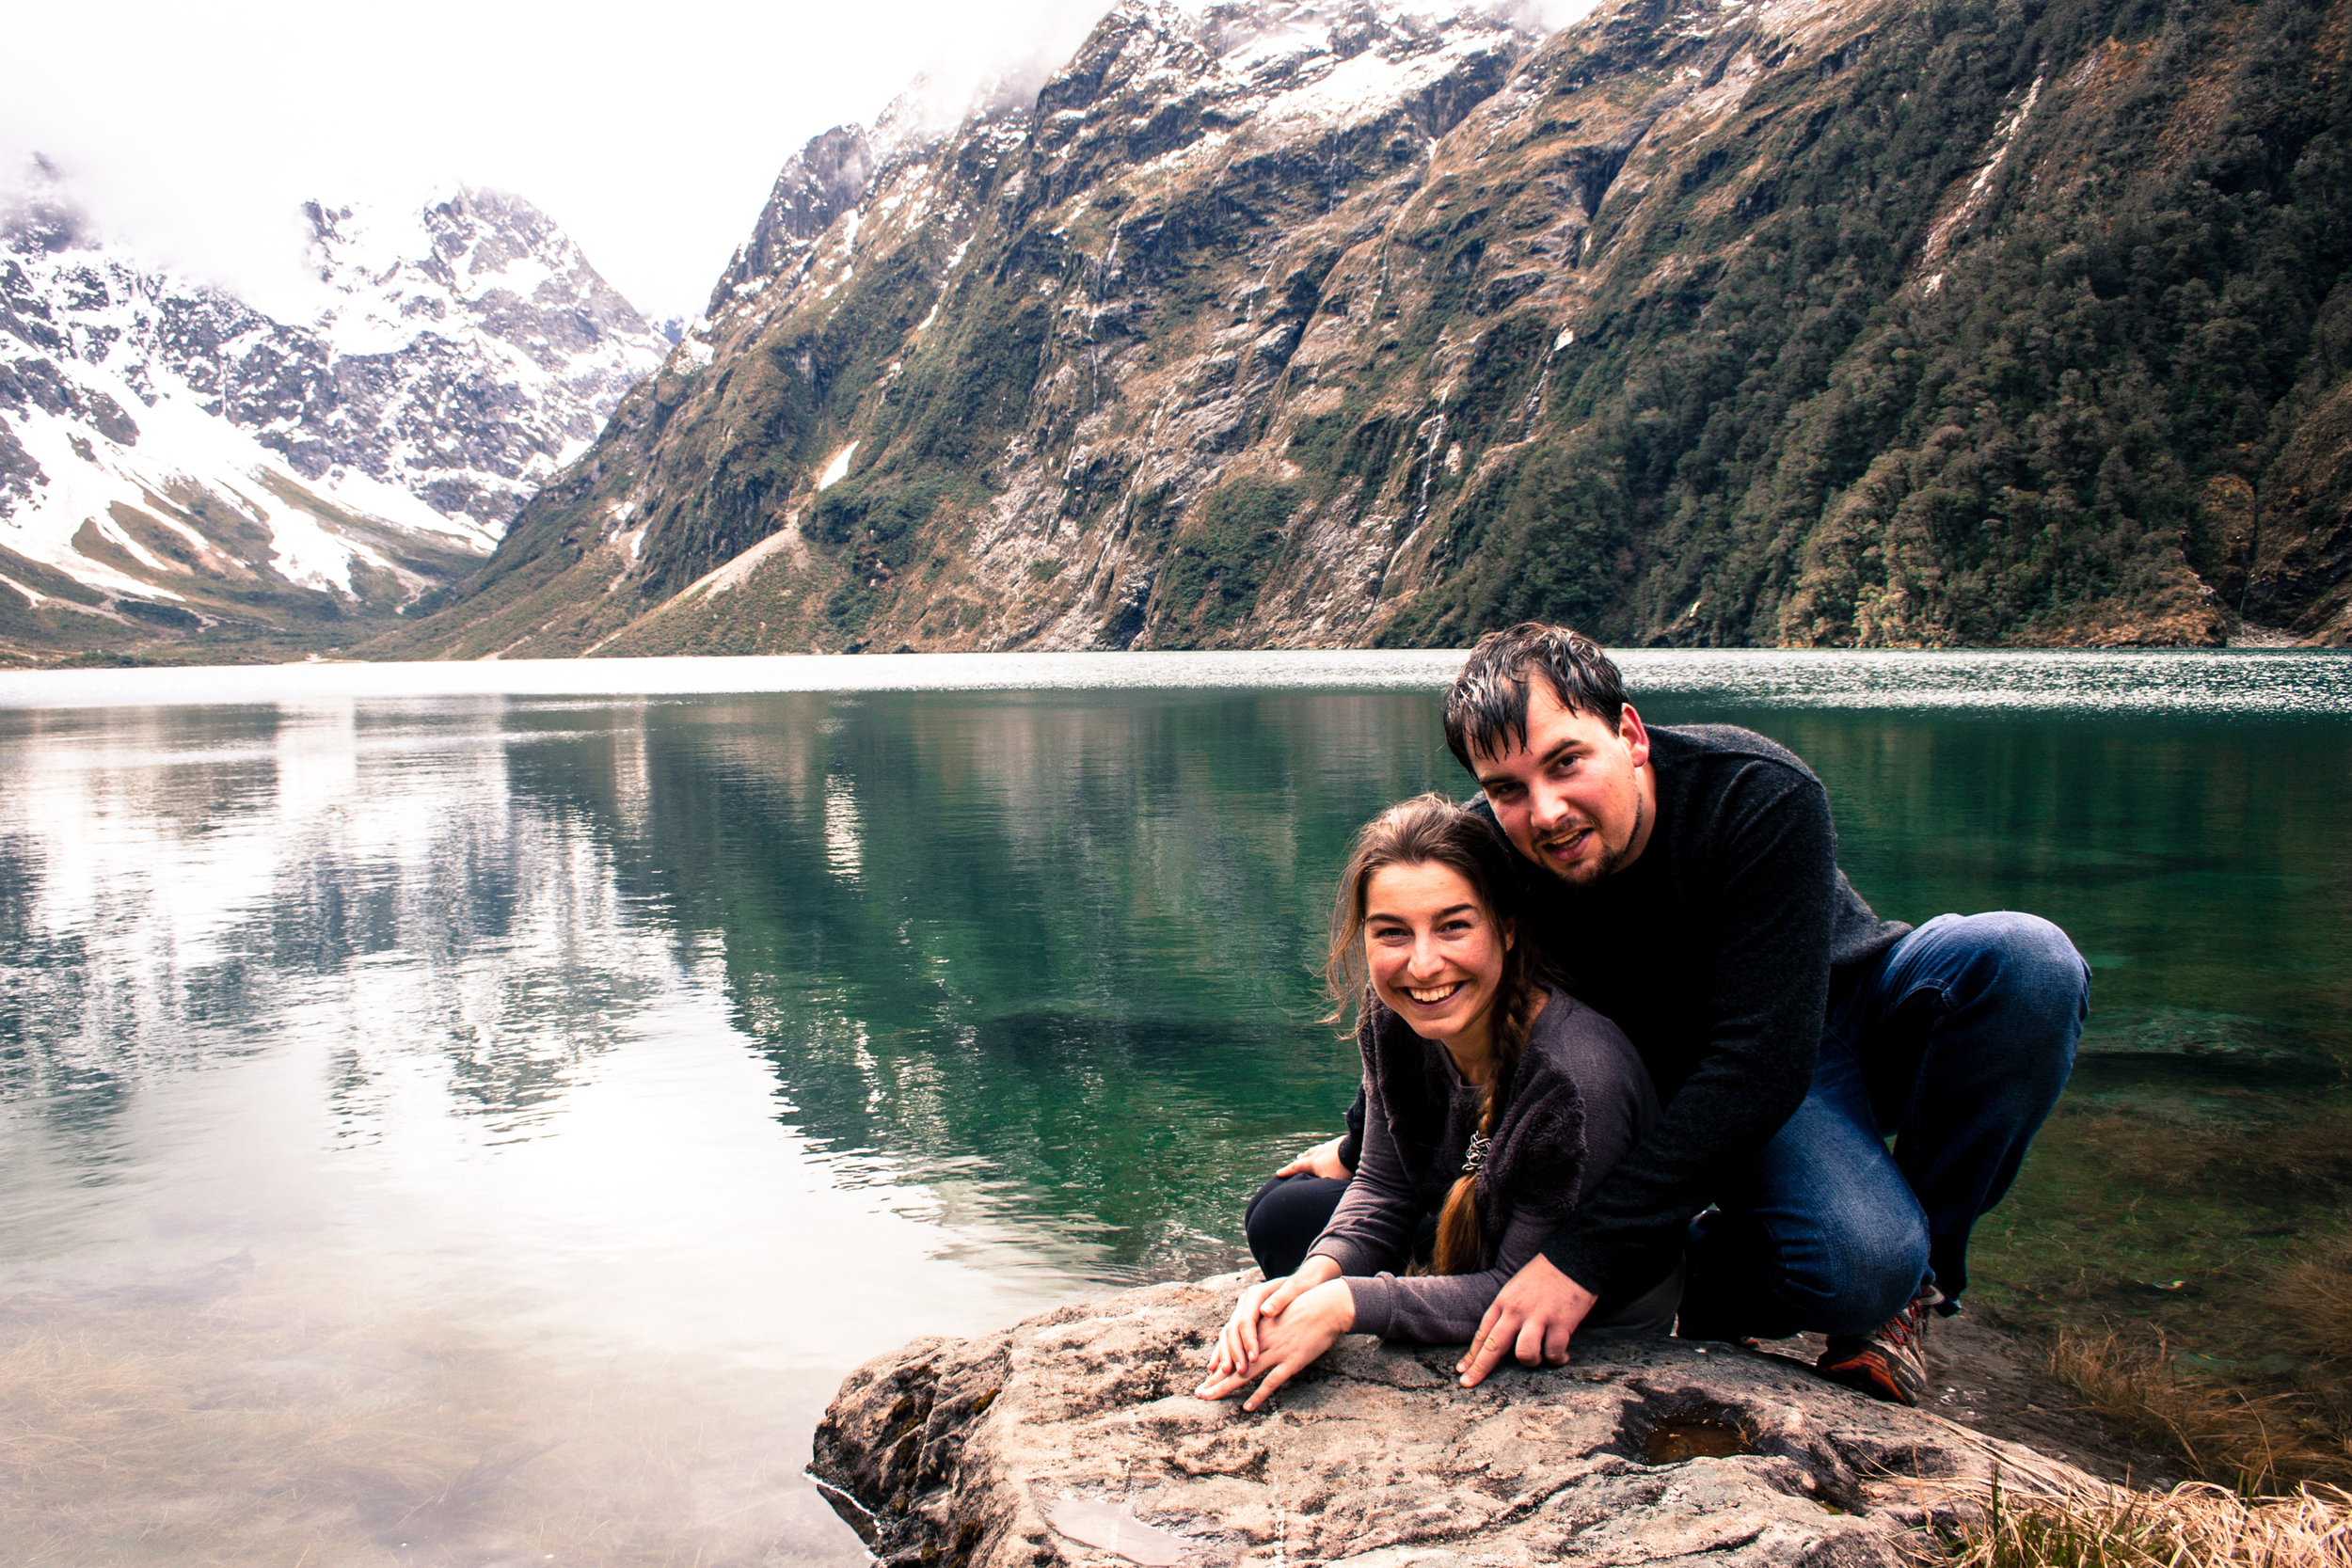 Samuel and Virginie from SV Photograph in New Zealand, South Island